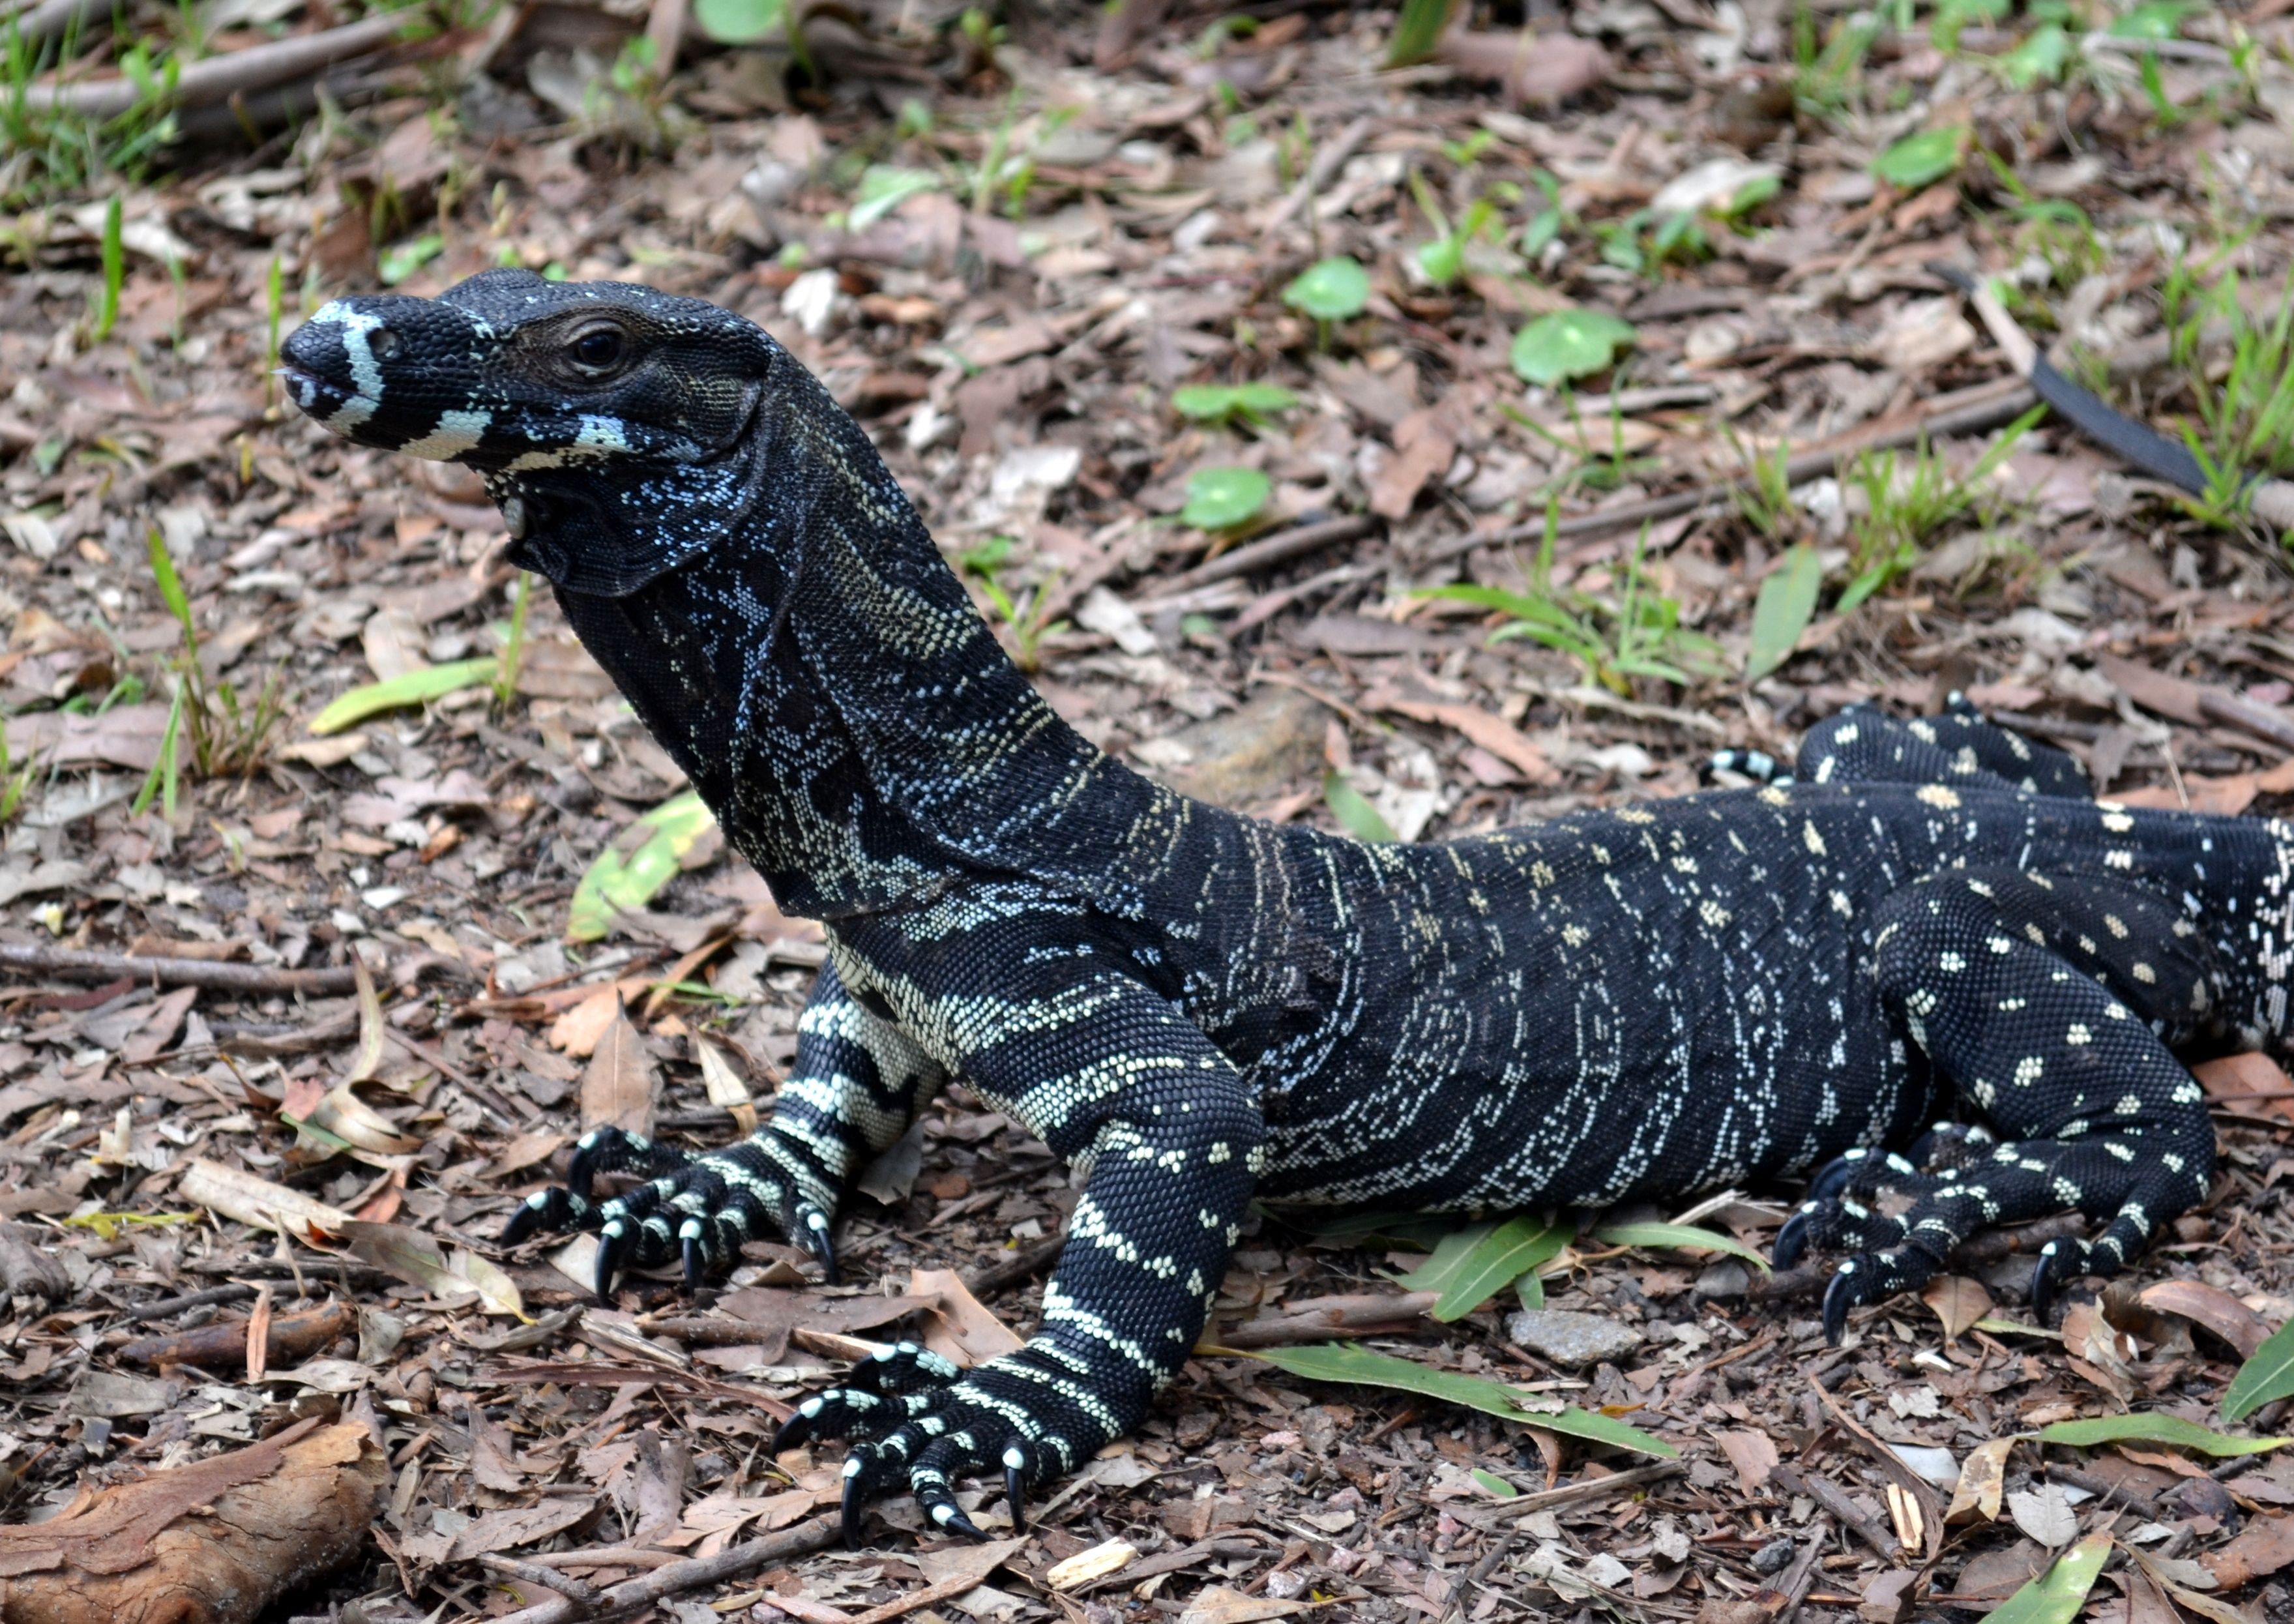 Lace Monitor Lizard Fingal Head Port Stephens Nsw According To